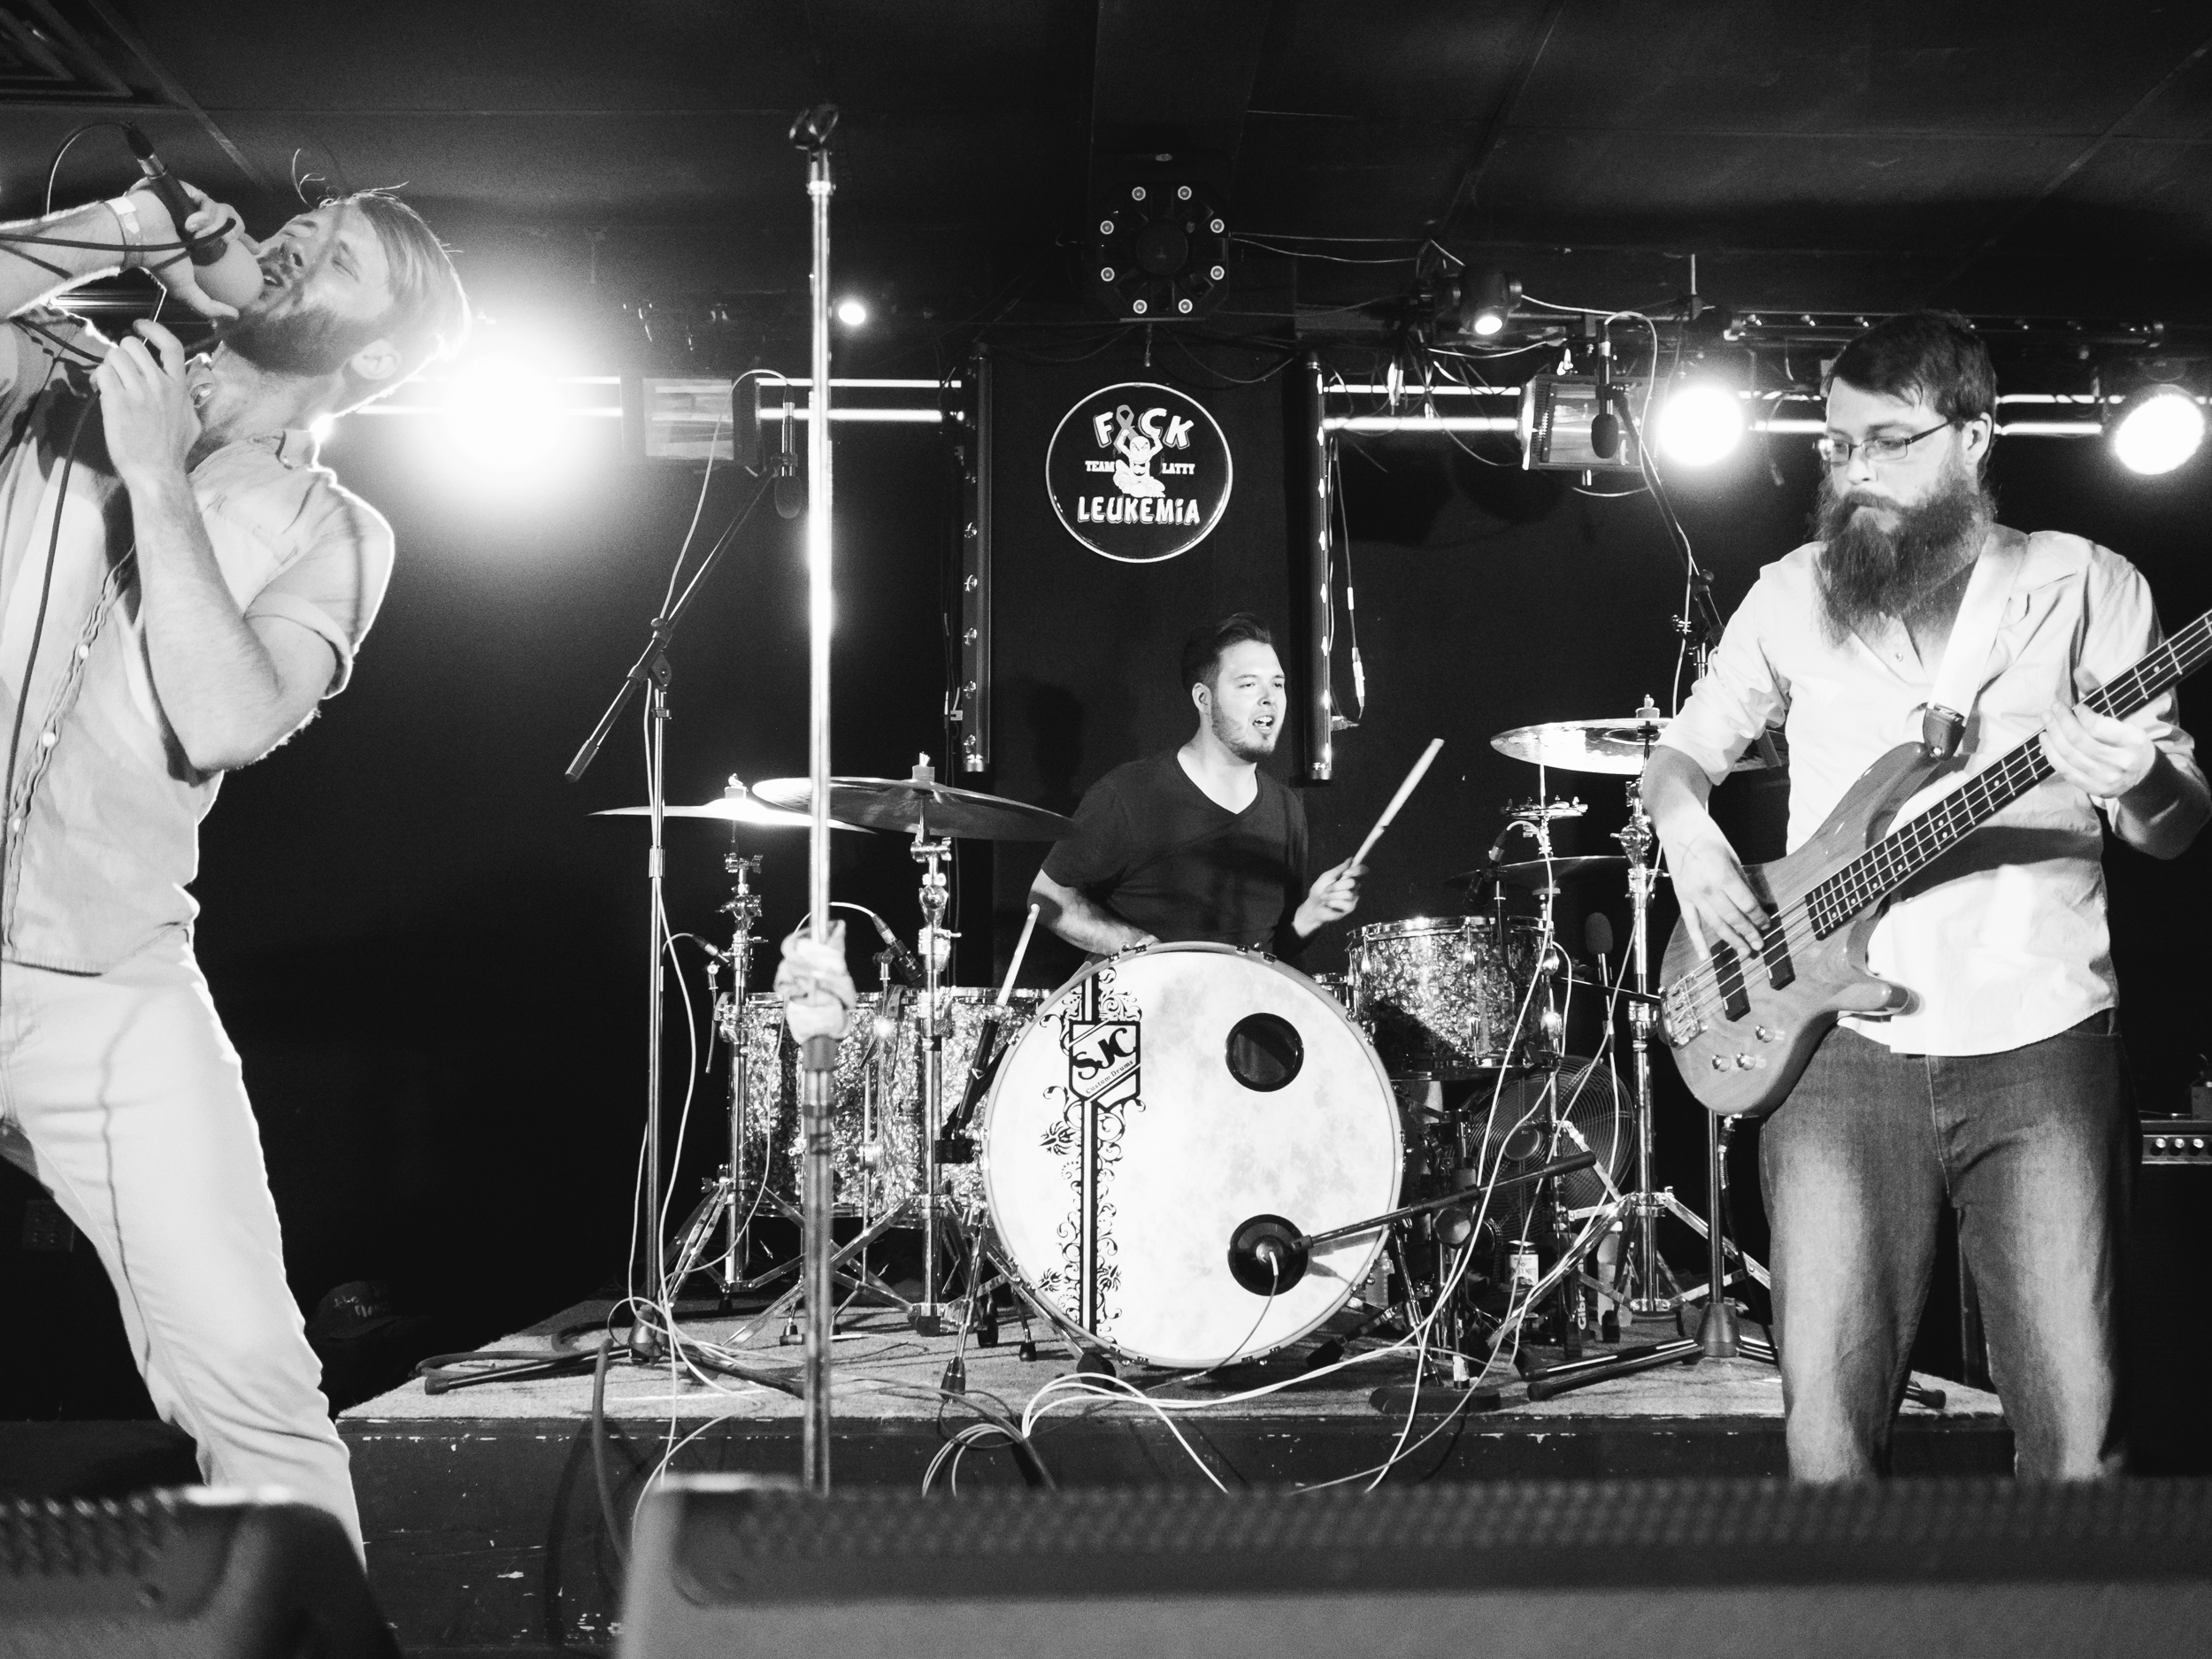 17-06-10_Concert_at_the_Foundry_6100109.JPG